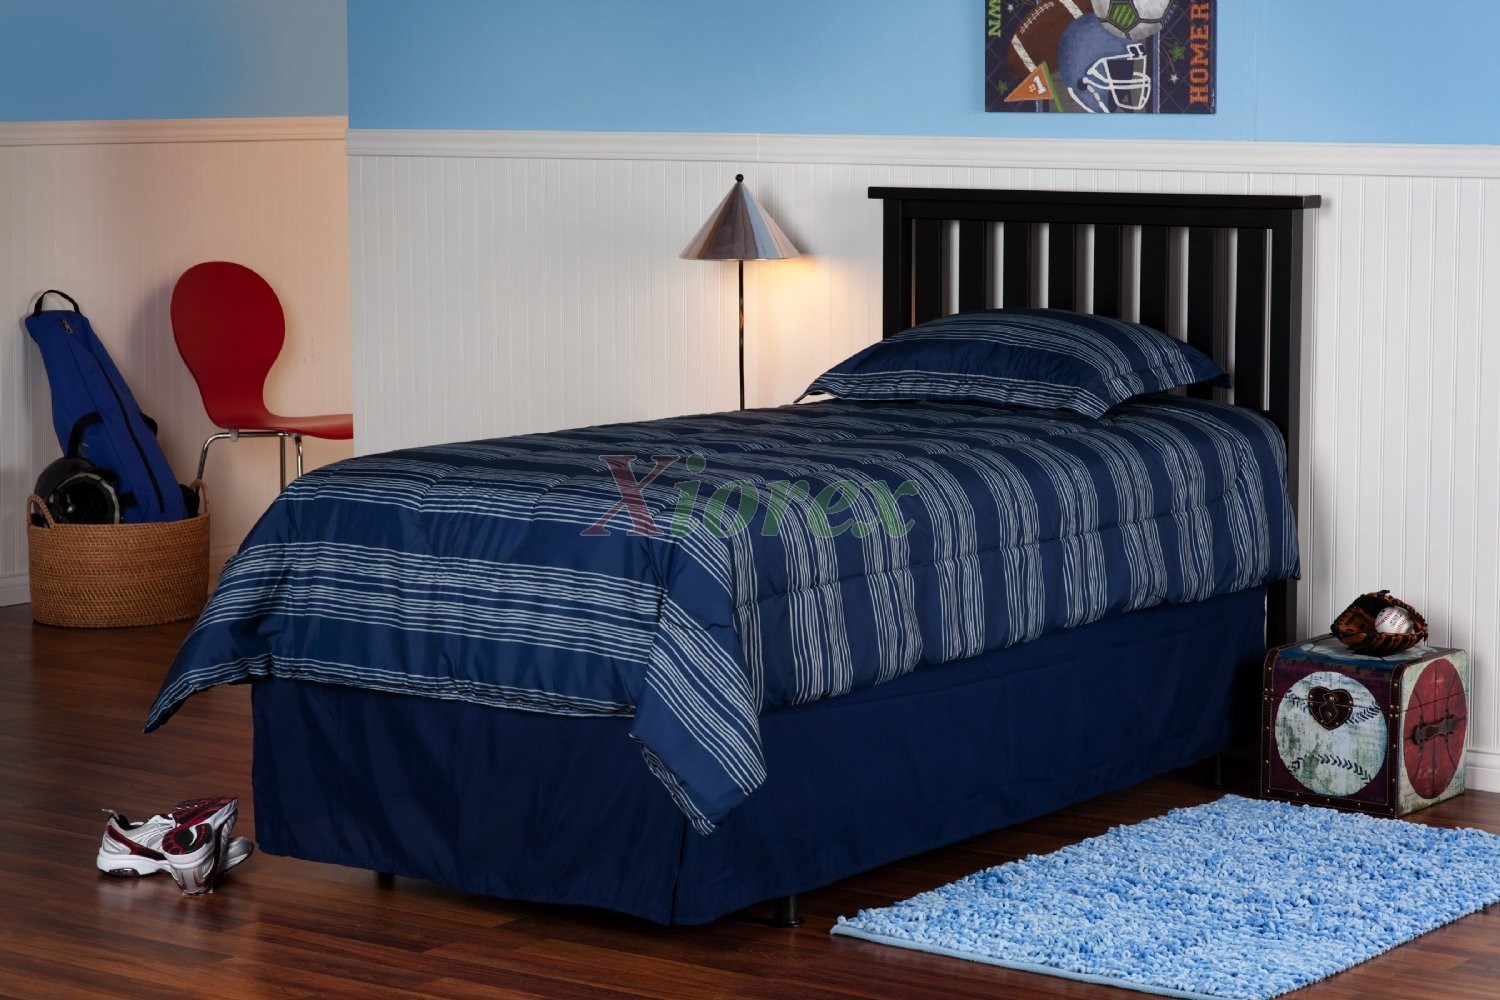 Belmont Headboard Twin Full Queen Size Slatted Wood In Black Xiorex